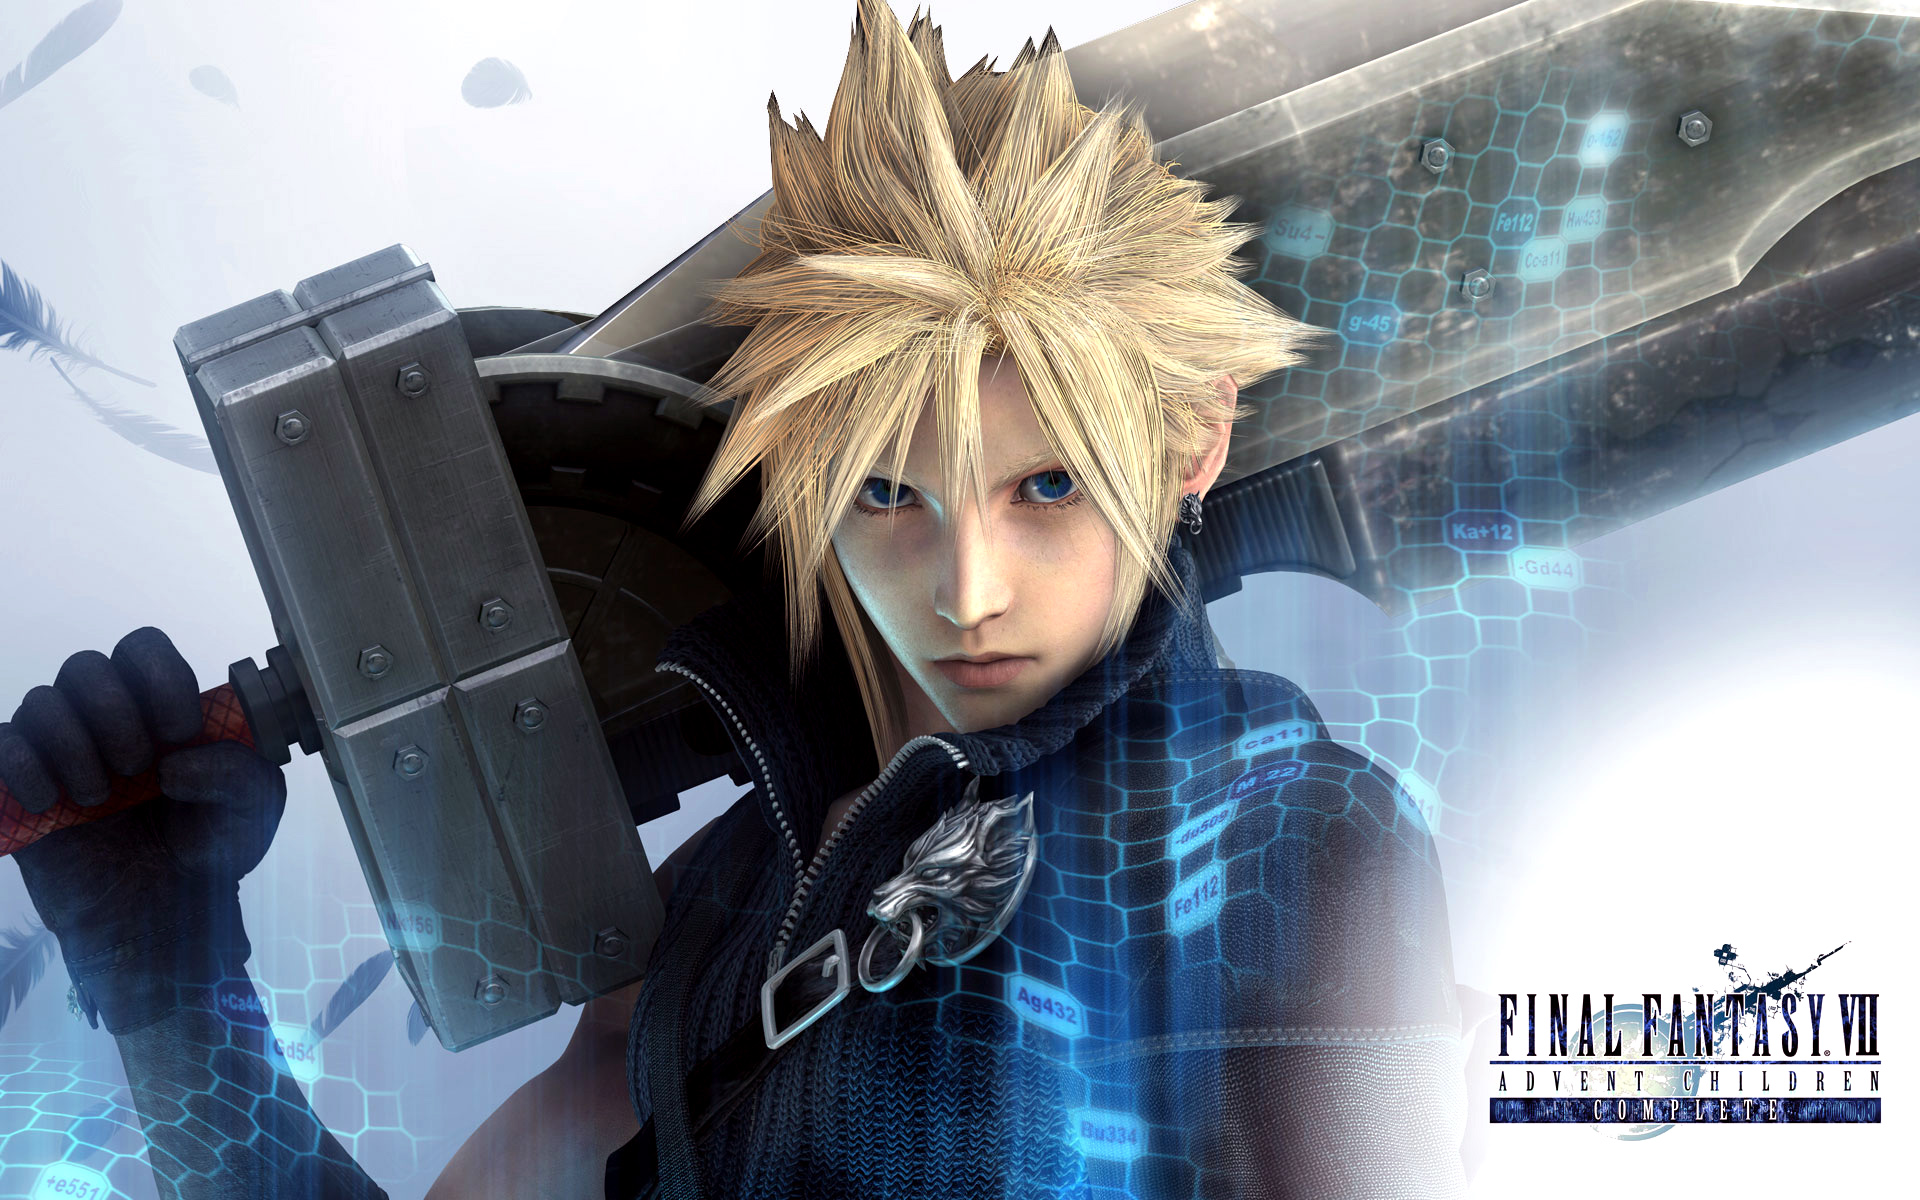 Final Fantasy 8 Wallpapers wallpaper wallpaper hd background 1920x1200